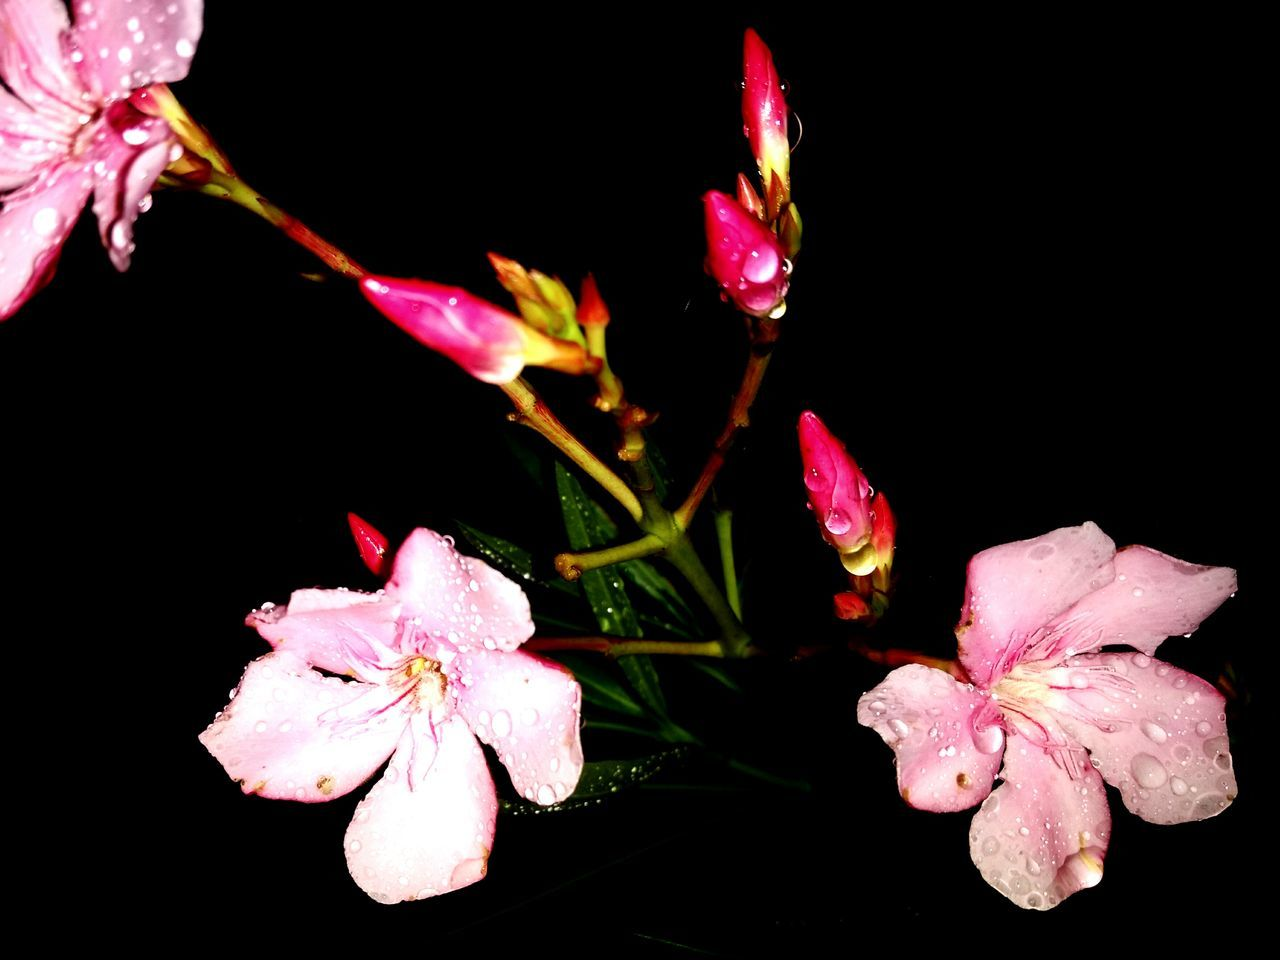 flower, petal, pink color, flower head, fragility, growth, black background, beauty in nature, nature, plant, no people, freshness, close-up, night, blooming, outdoors, periwinkle, water